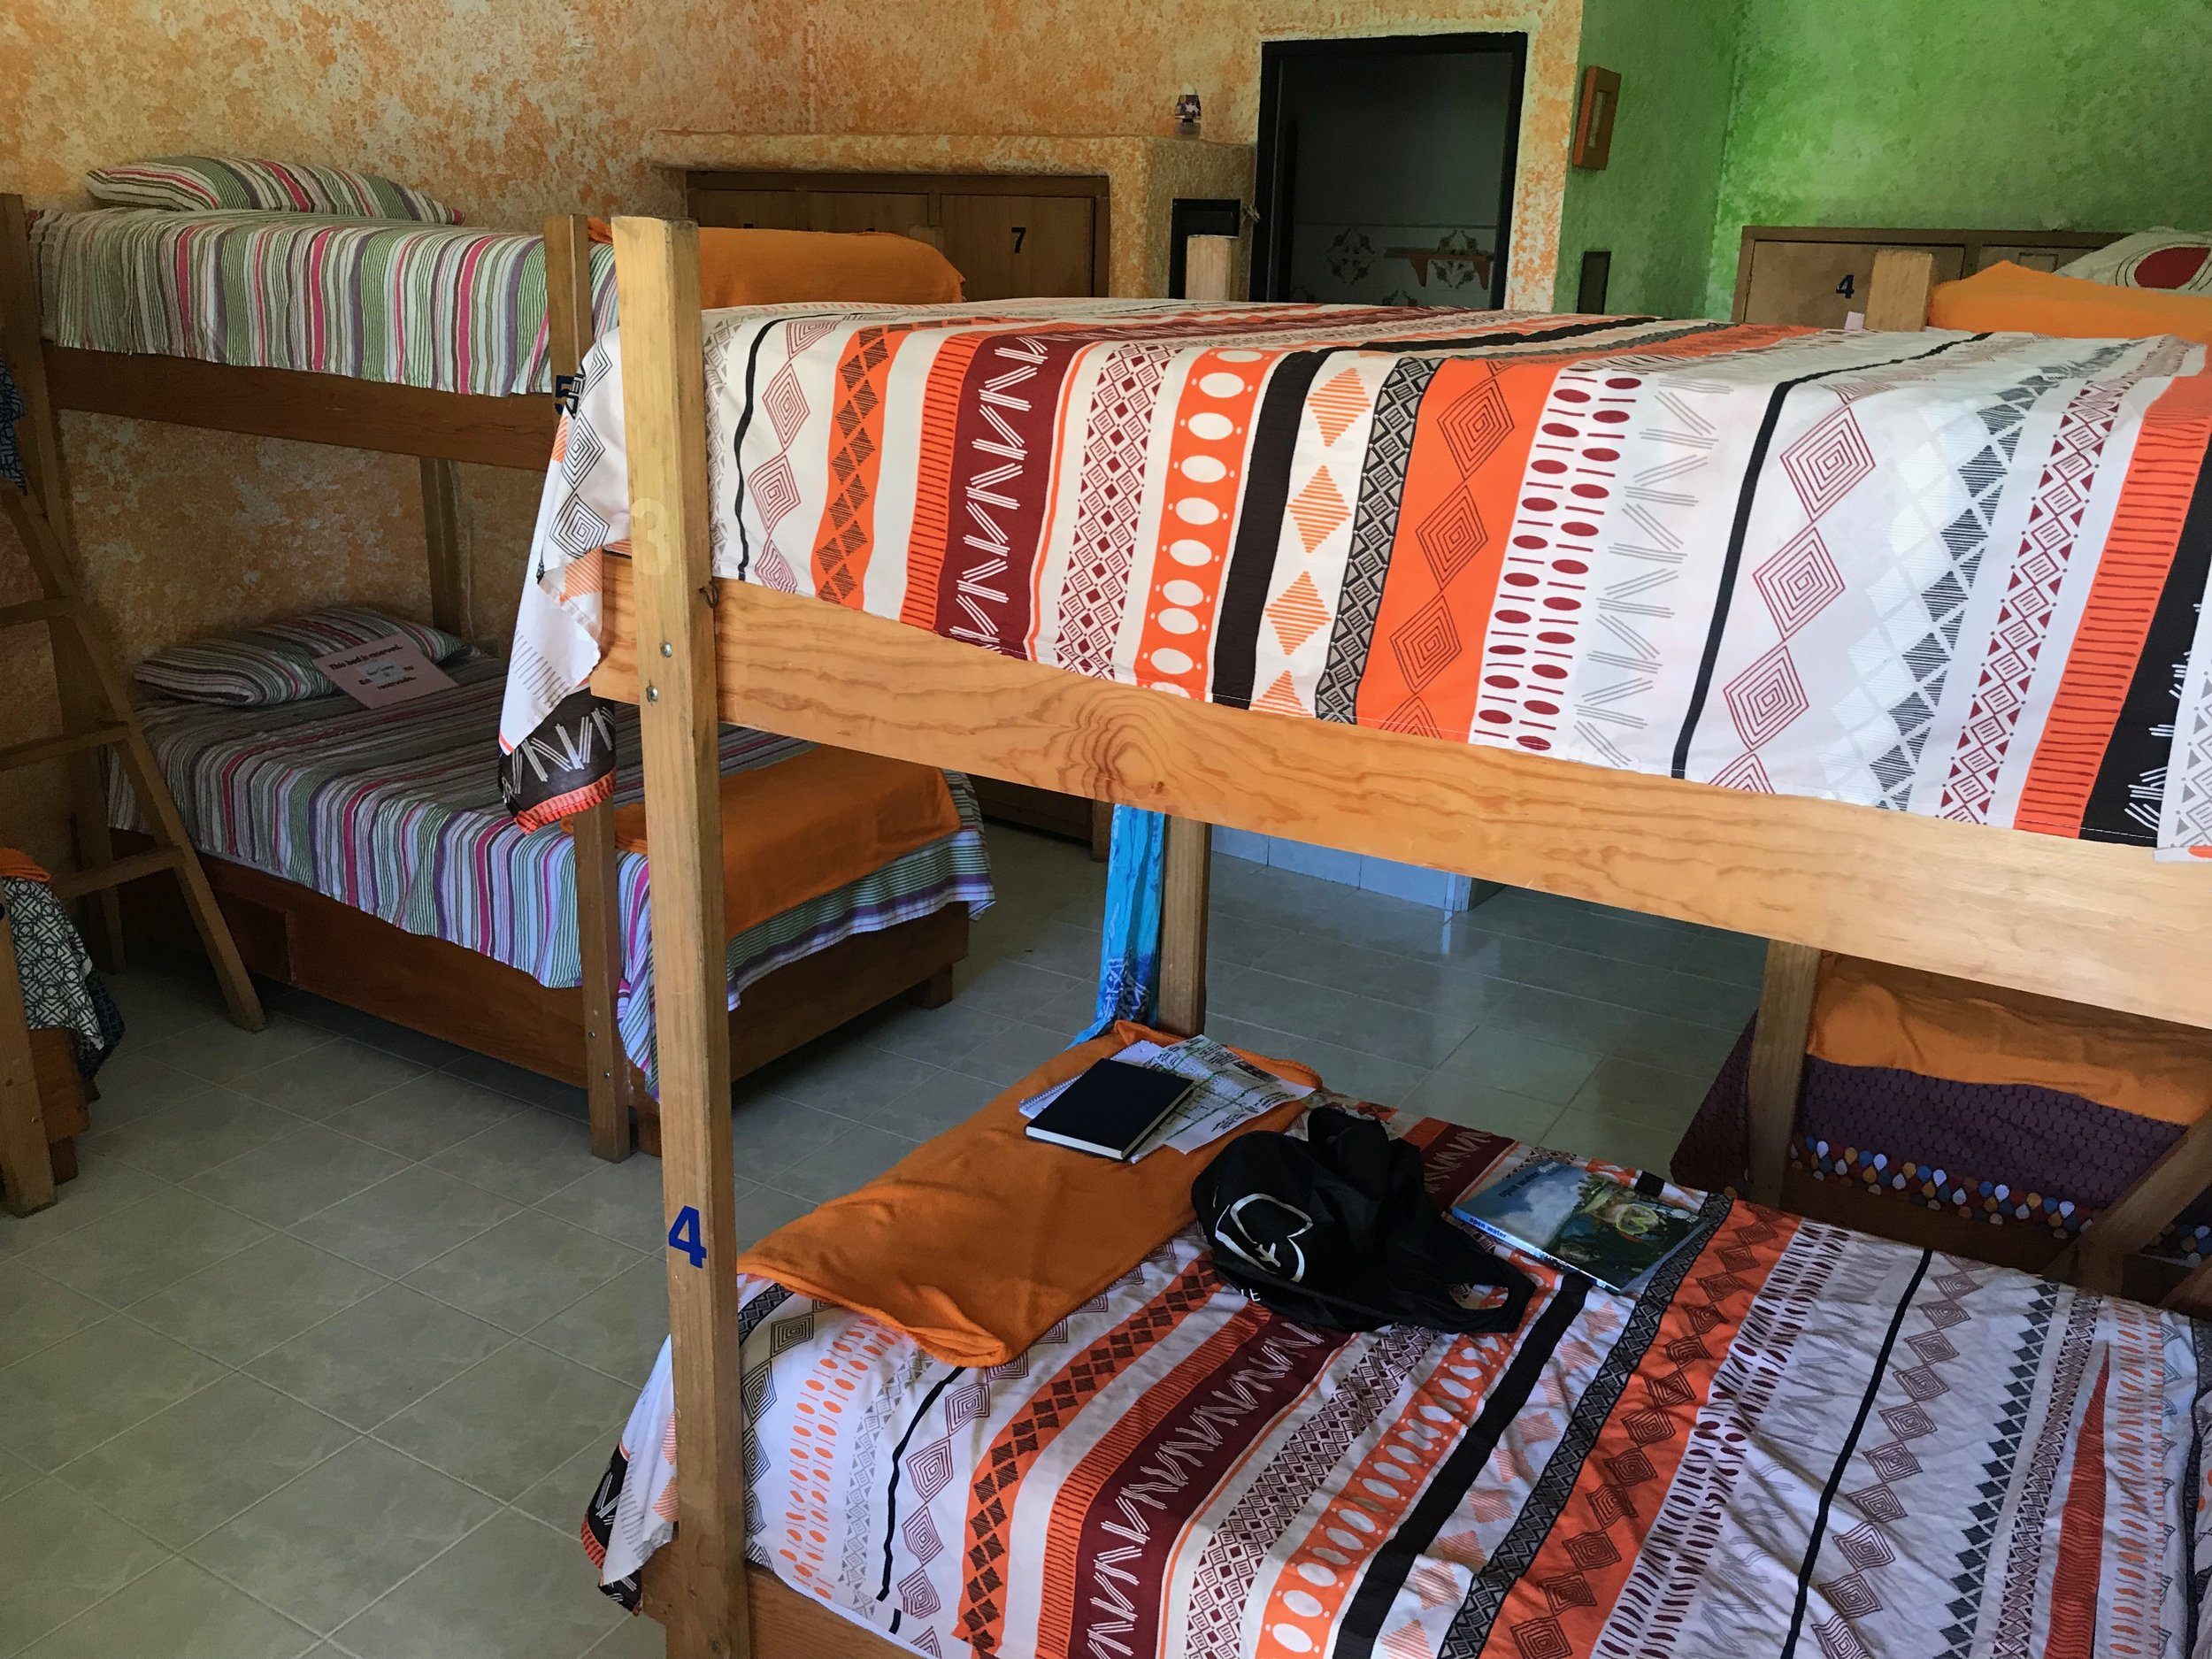 Where to stay in Cozumel - Amigos Hostel Cozumel